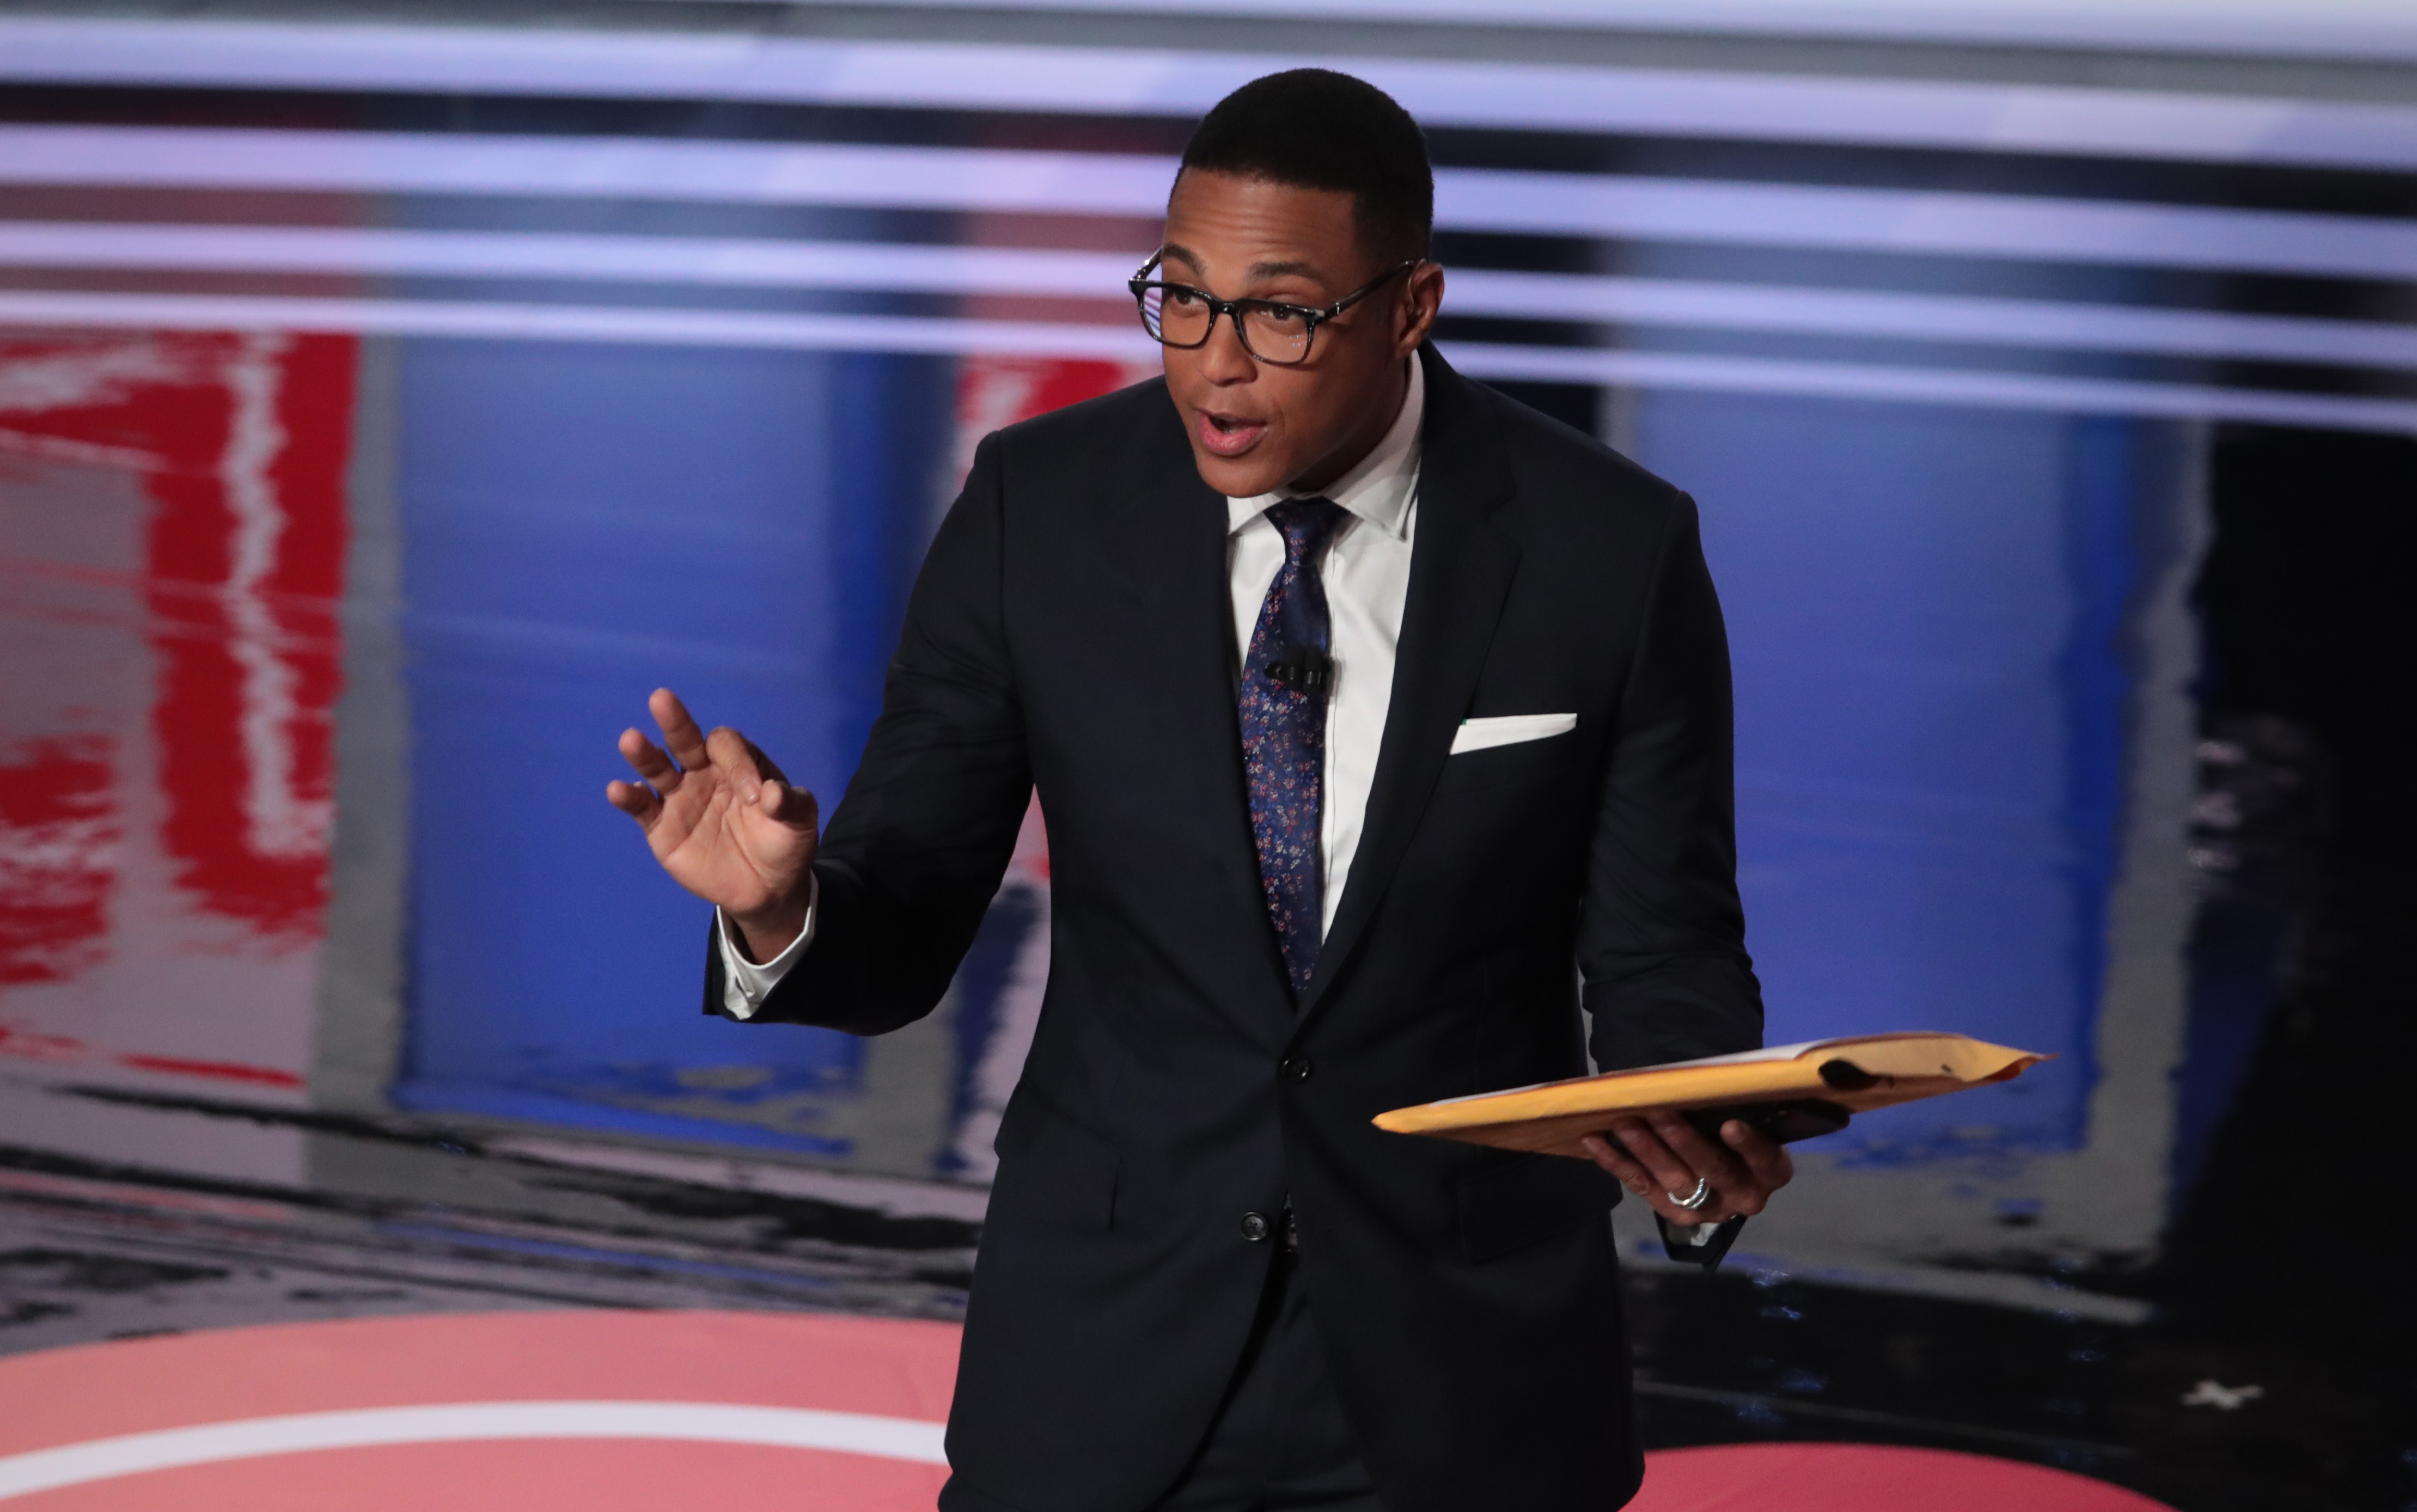 Don lemon allegations